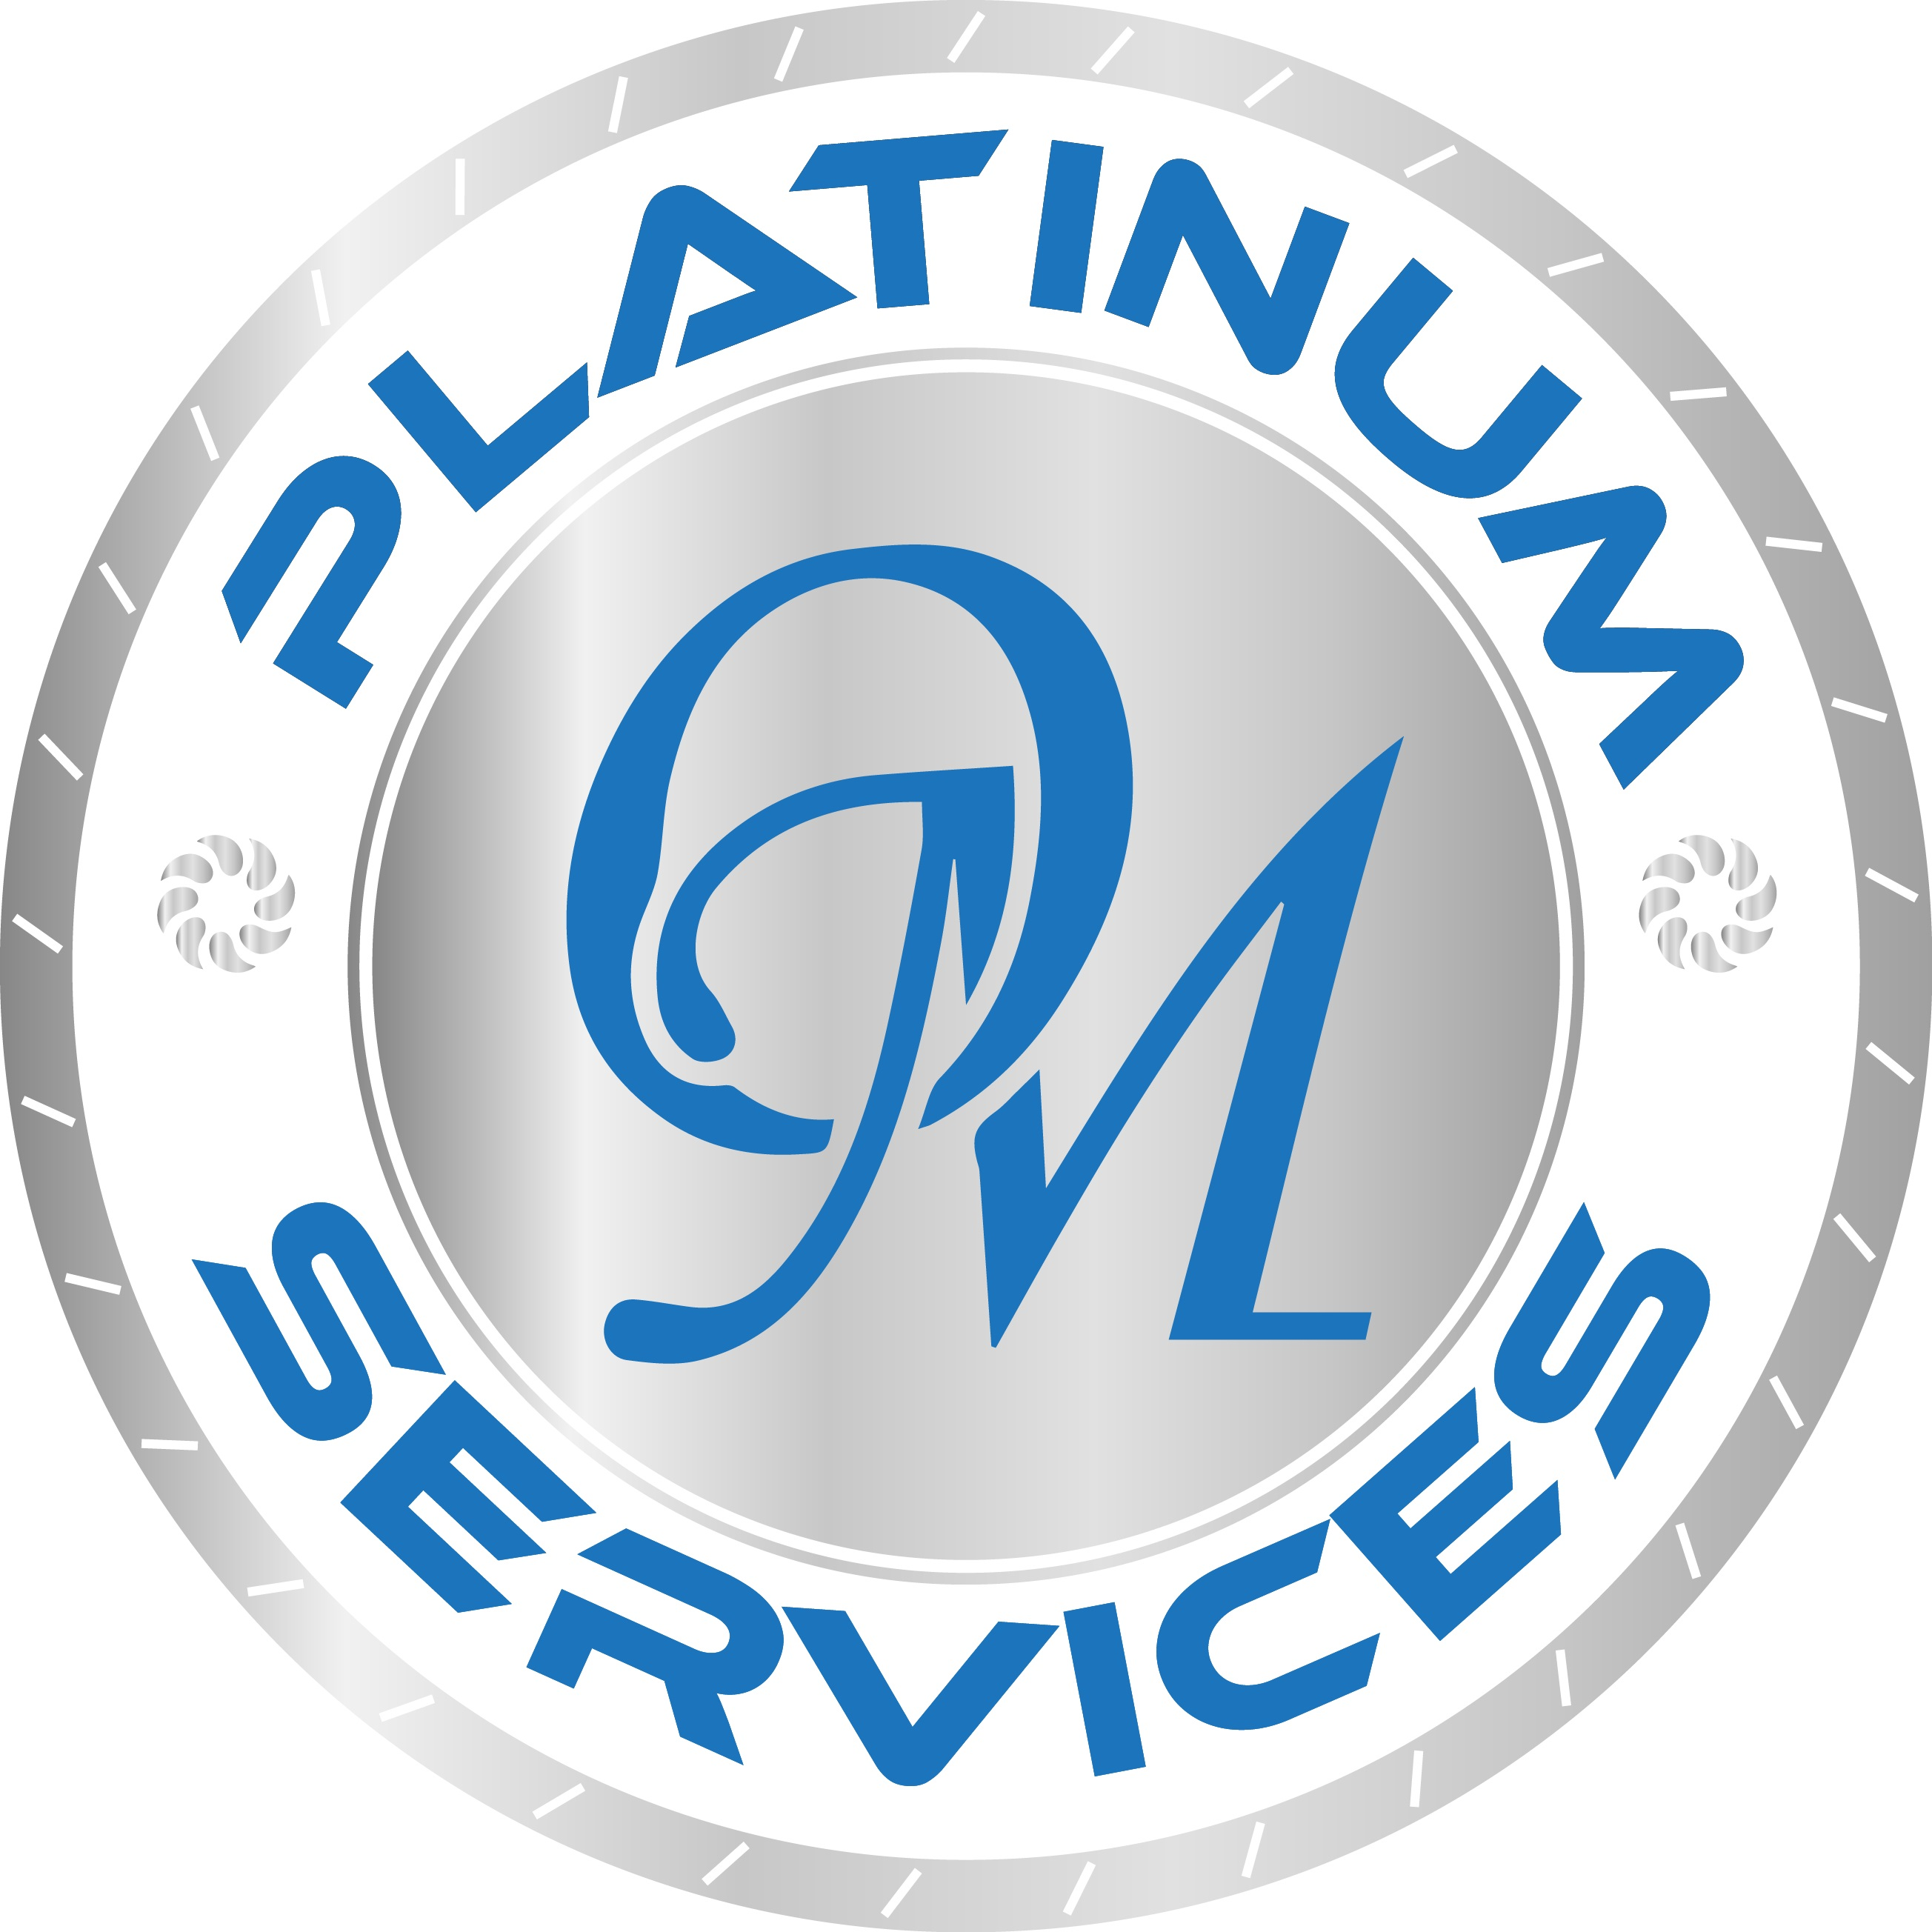 OM Platinum Services LLC